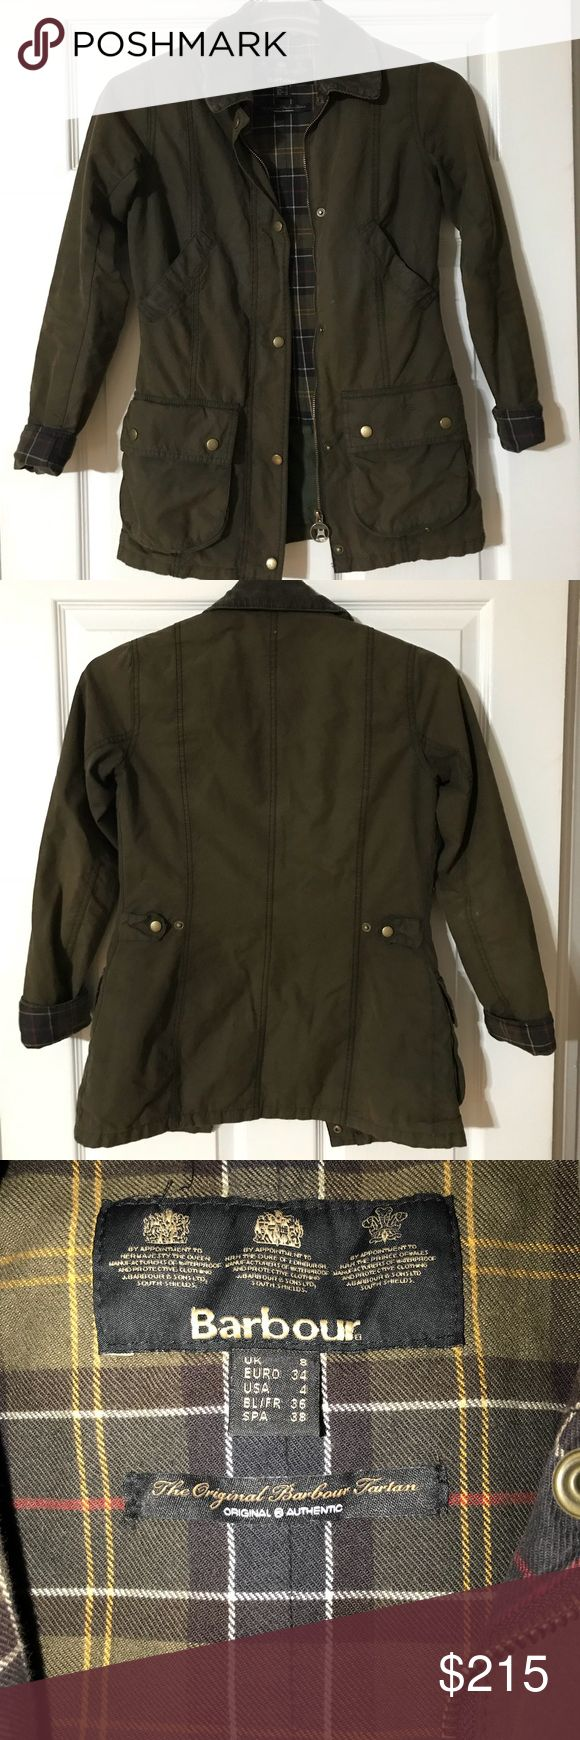 Barbour Beadnell Wax Jacket This jacket is in great condition and has a lot of life left in it! Barbour Jackets & Coats Utility Jackets